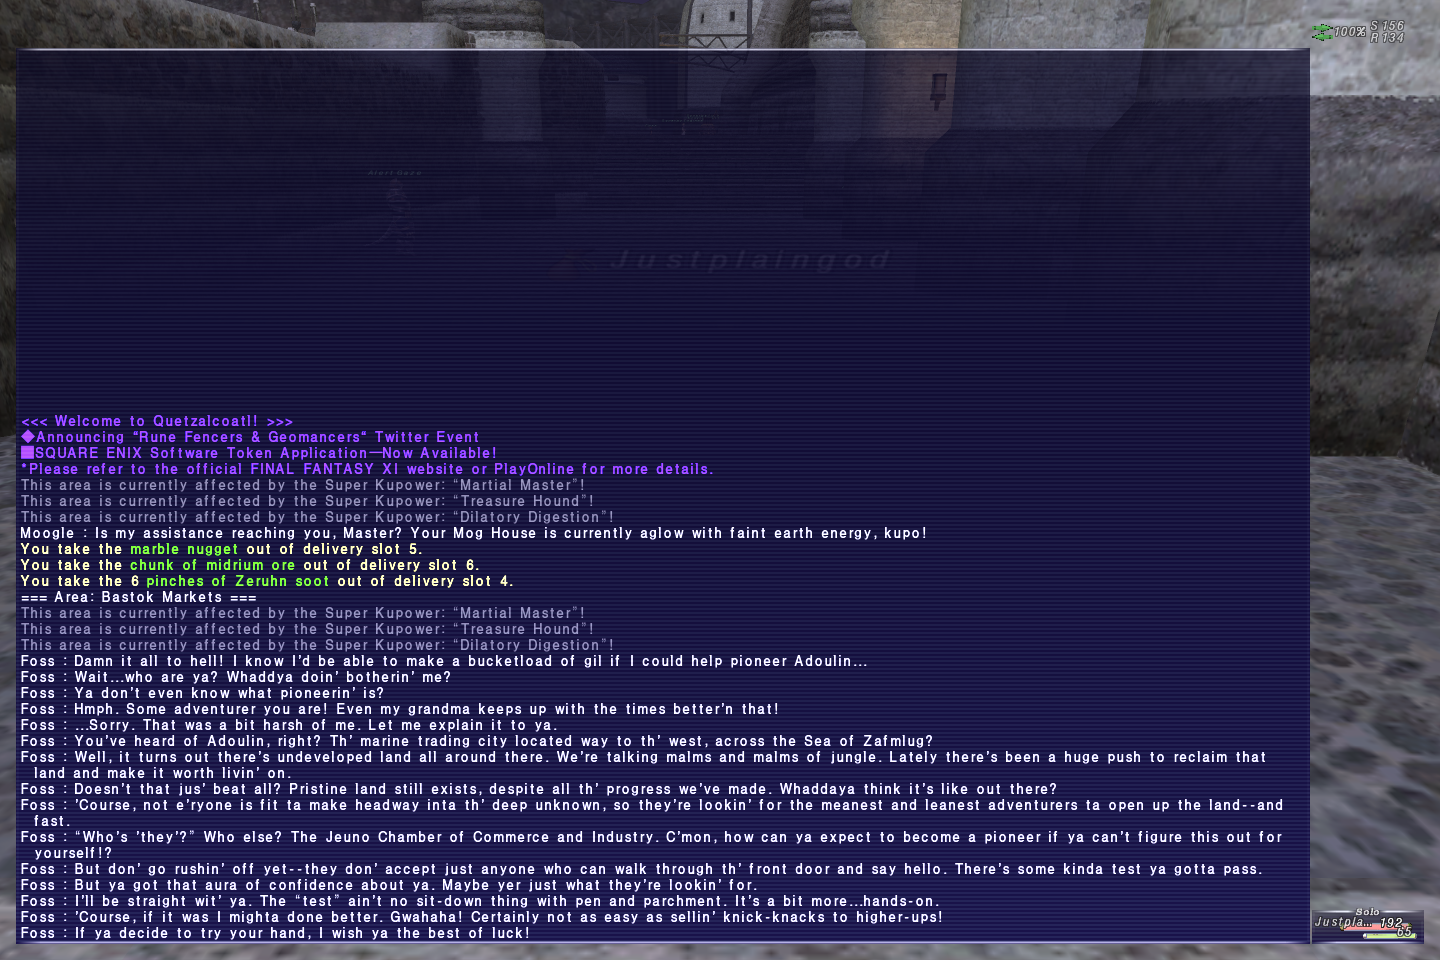 6souls ffxi think require posts more even havent they talked about something some gardens likely matsuifujito monstrosity thats probably play-as-a-monster discussion mining adoulin 3272013 update dat system isnt independent seekers said themselves been development that